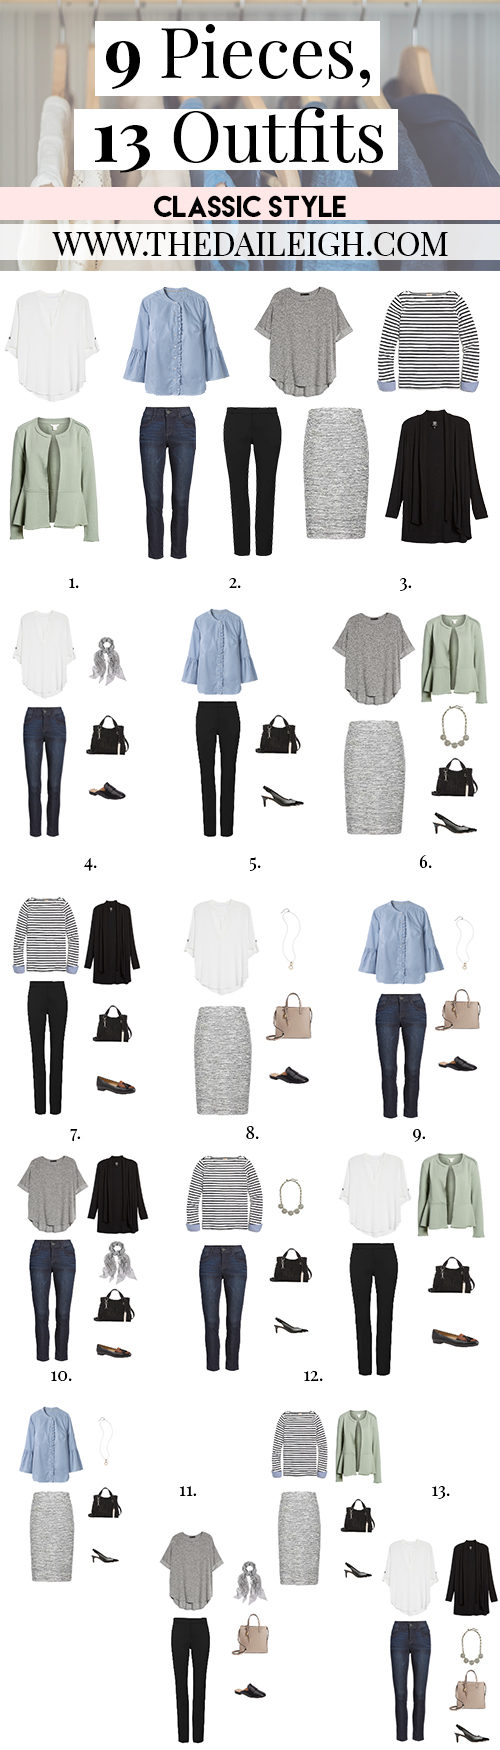 9 Pieces, 13 Outfits - Classic Style